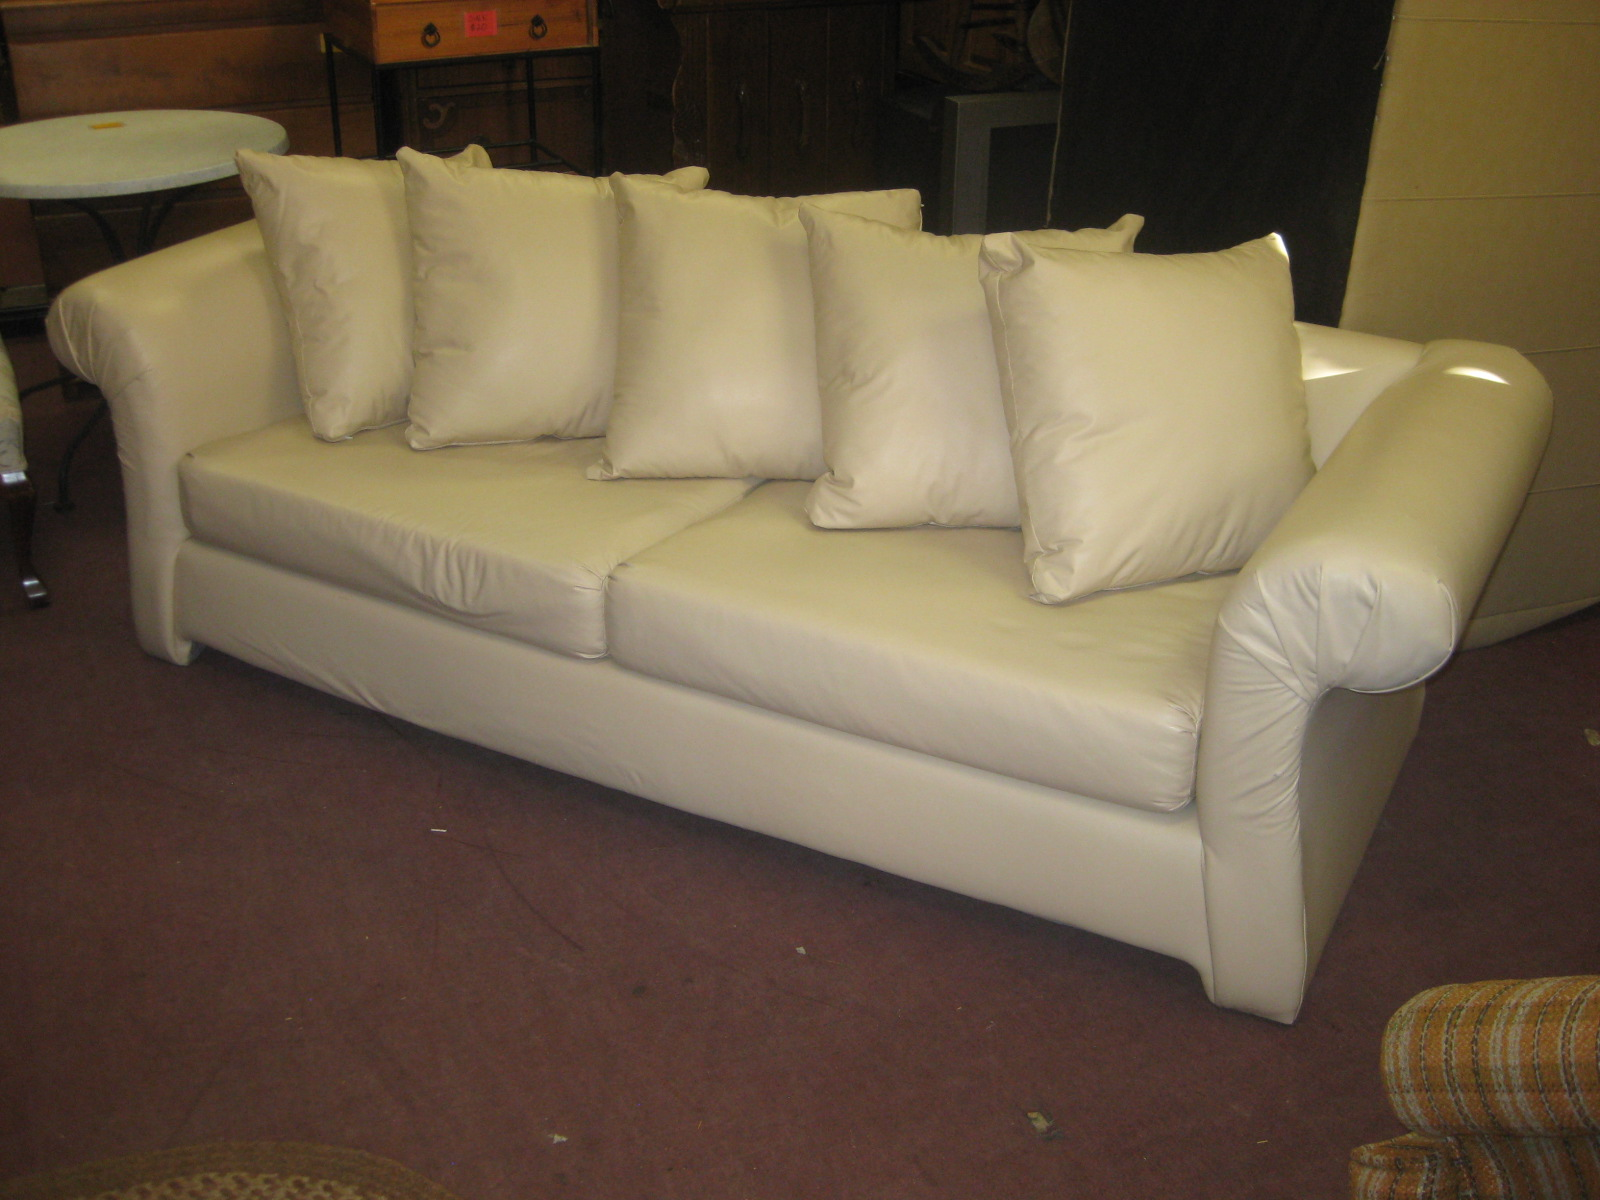 Sofa Repair Visakhapatnam Sofa Repair Vinyl Sofa Repair Kit Uk